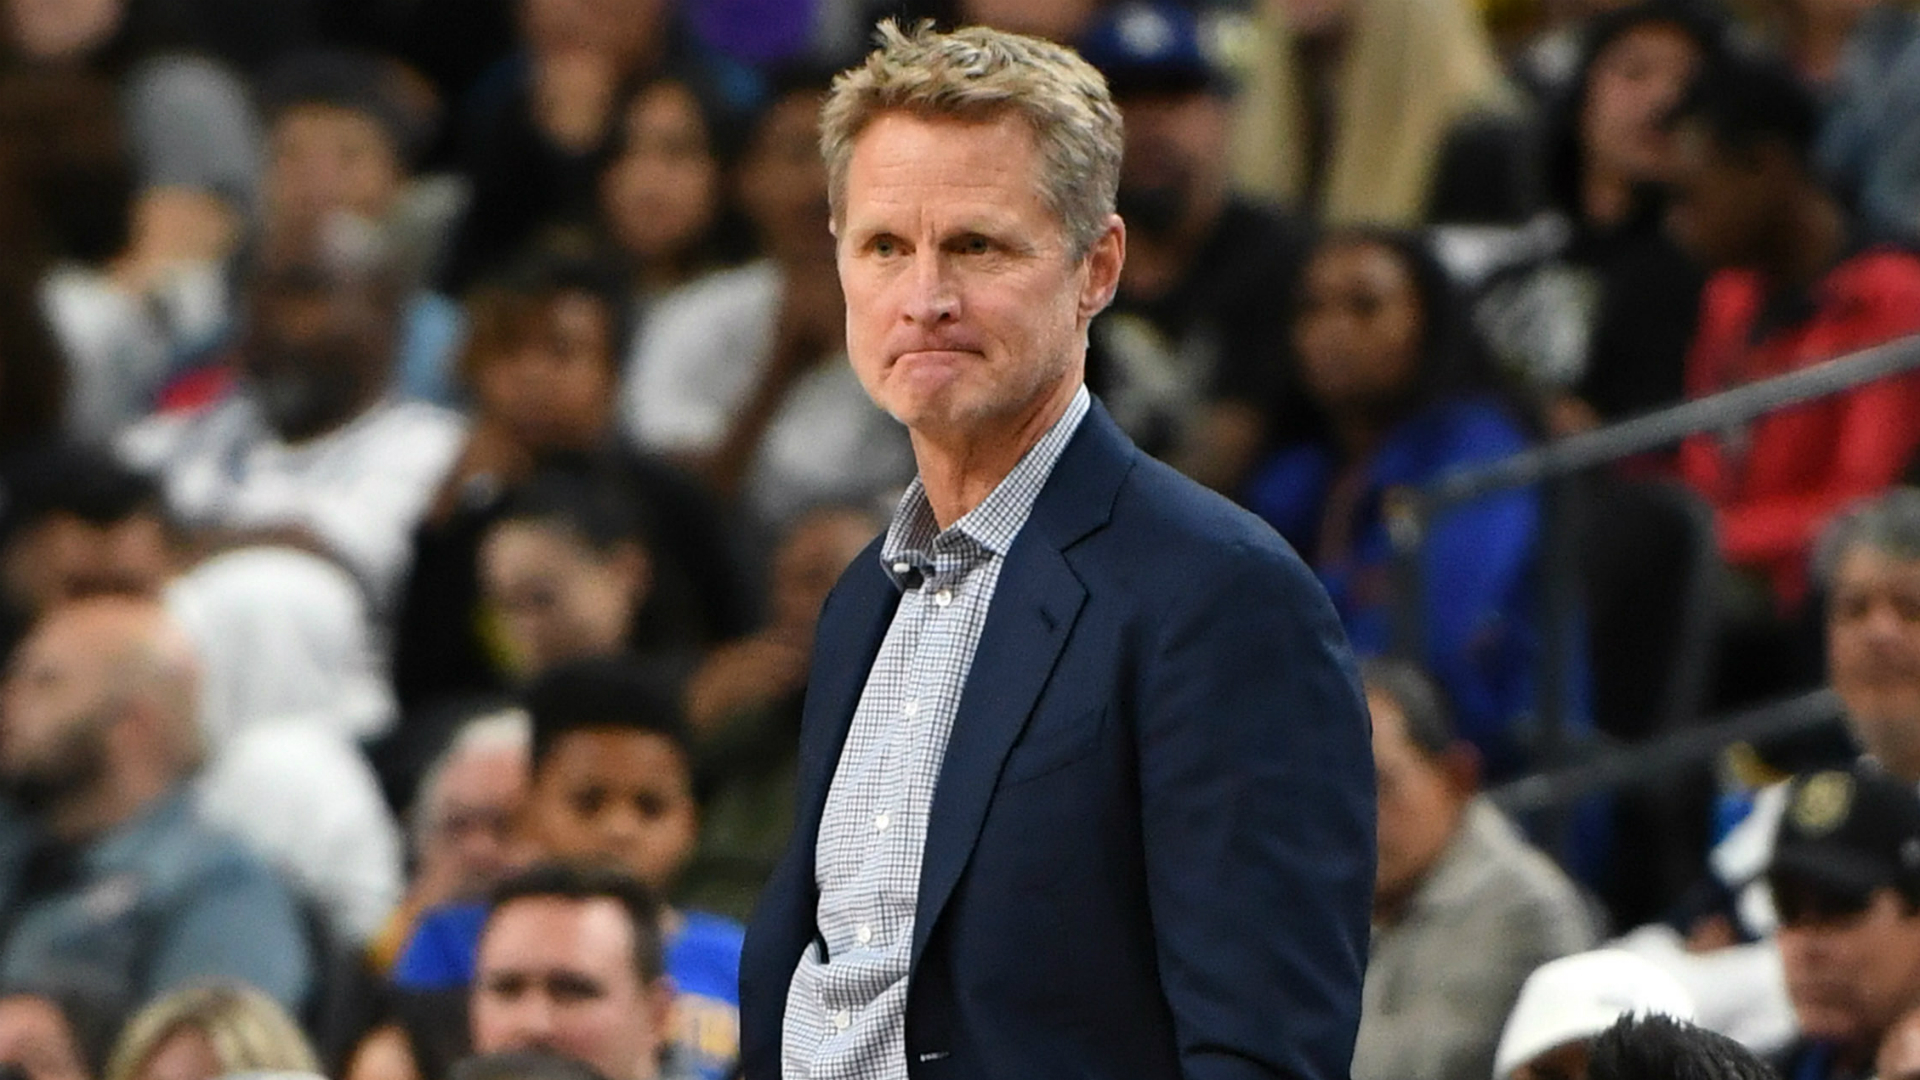 Steve Kerr supports Colin Kaepernick: 'I think he deserves a chance to play'